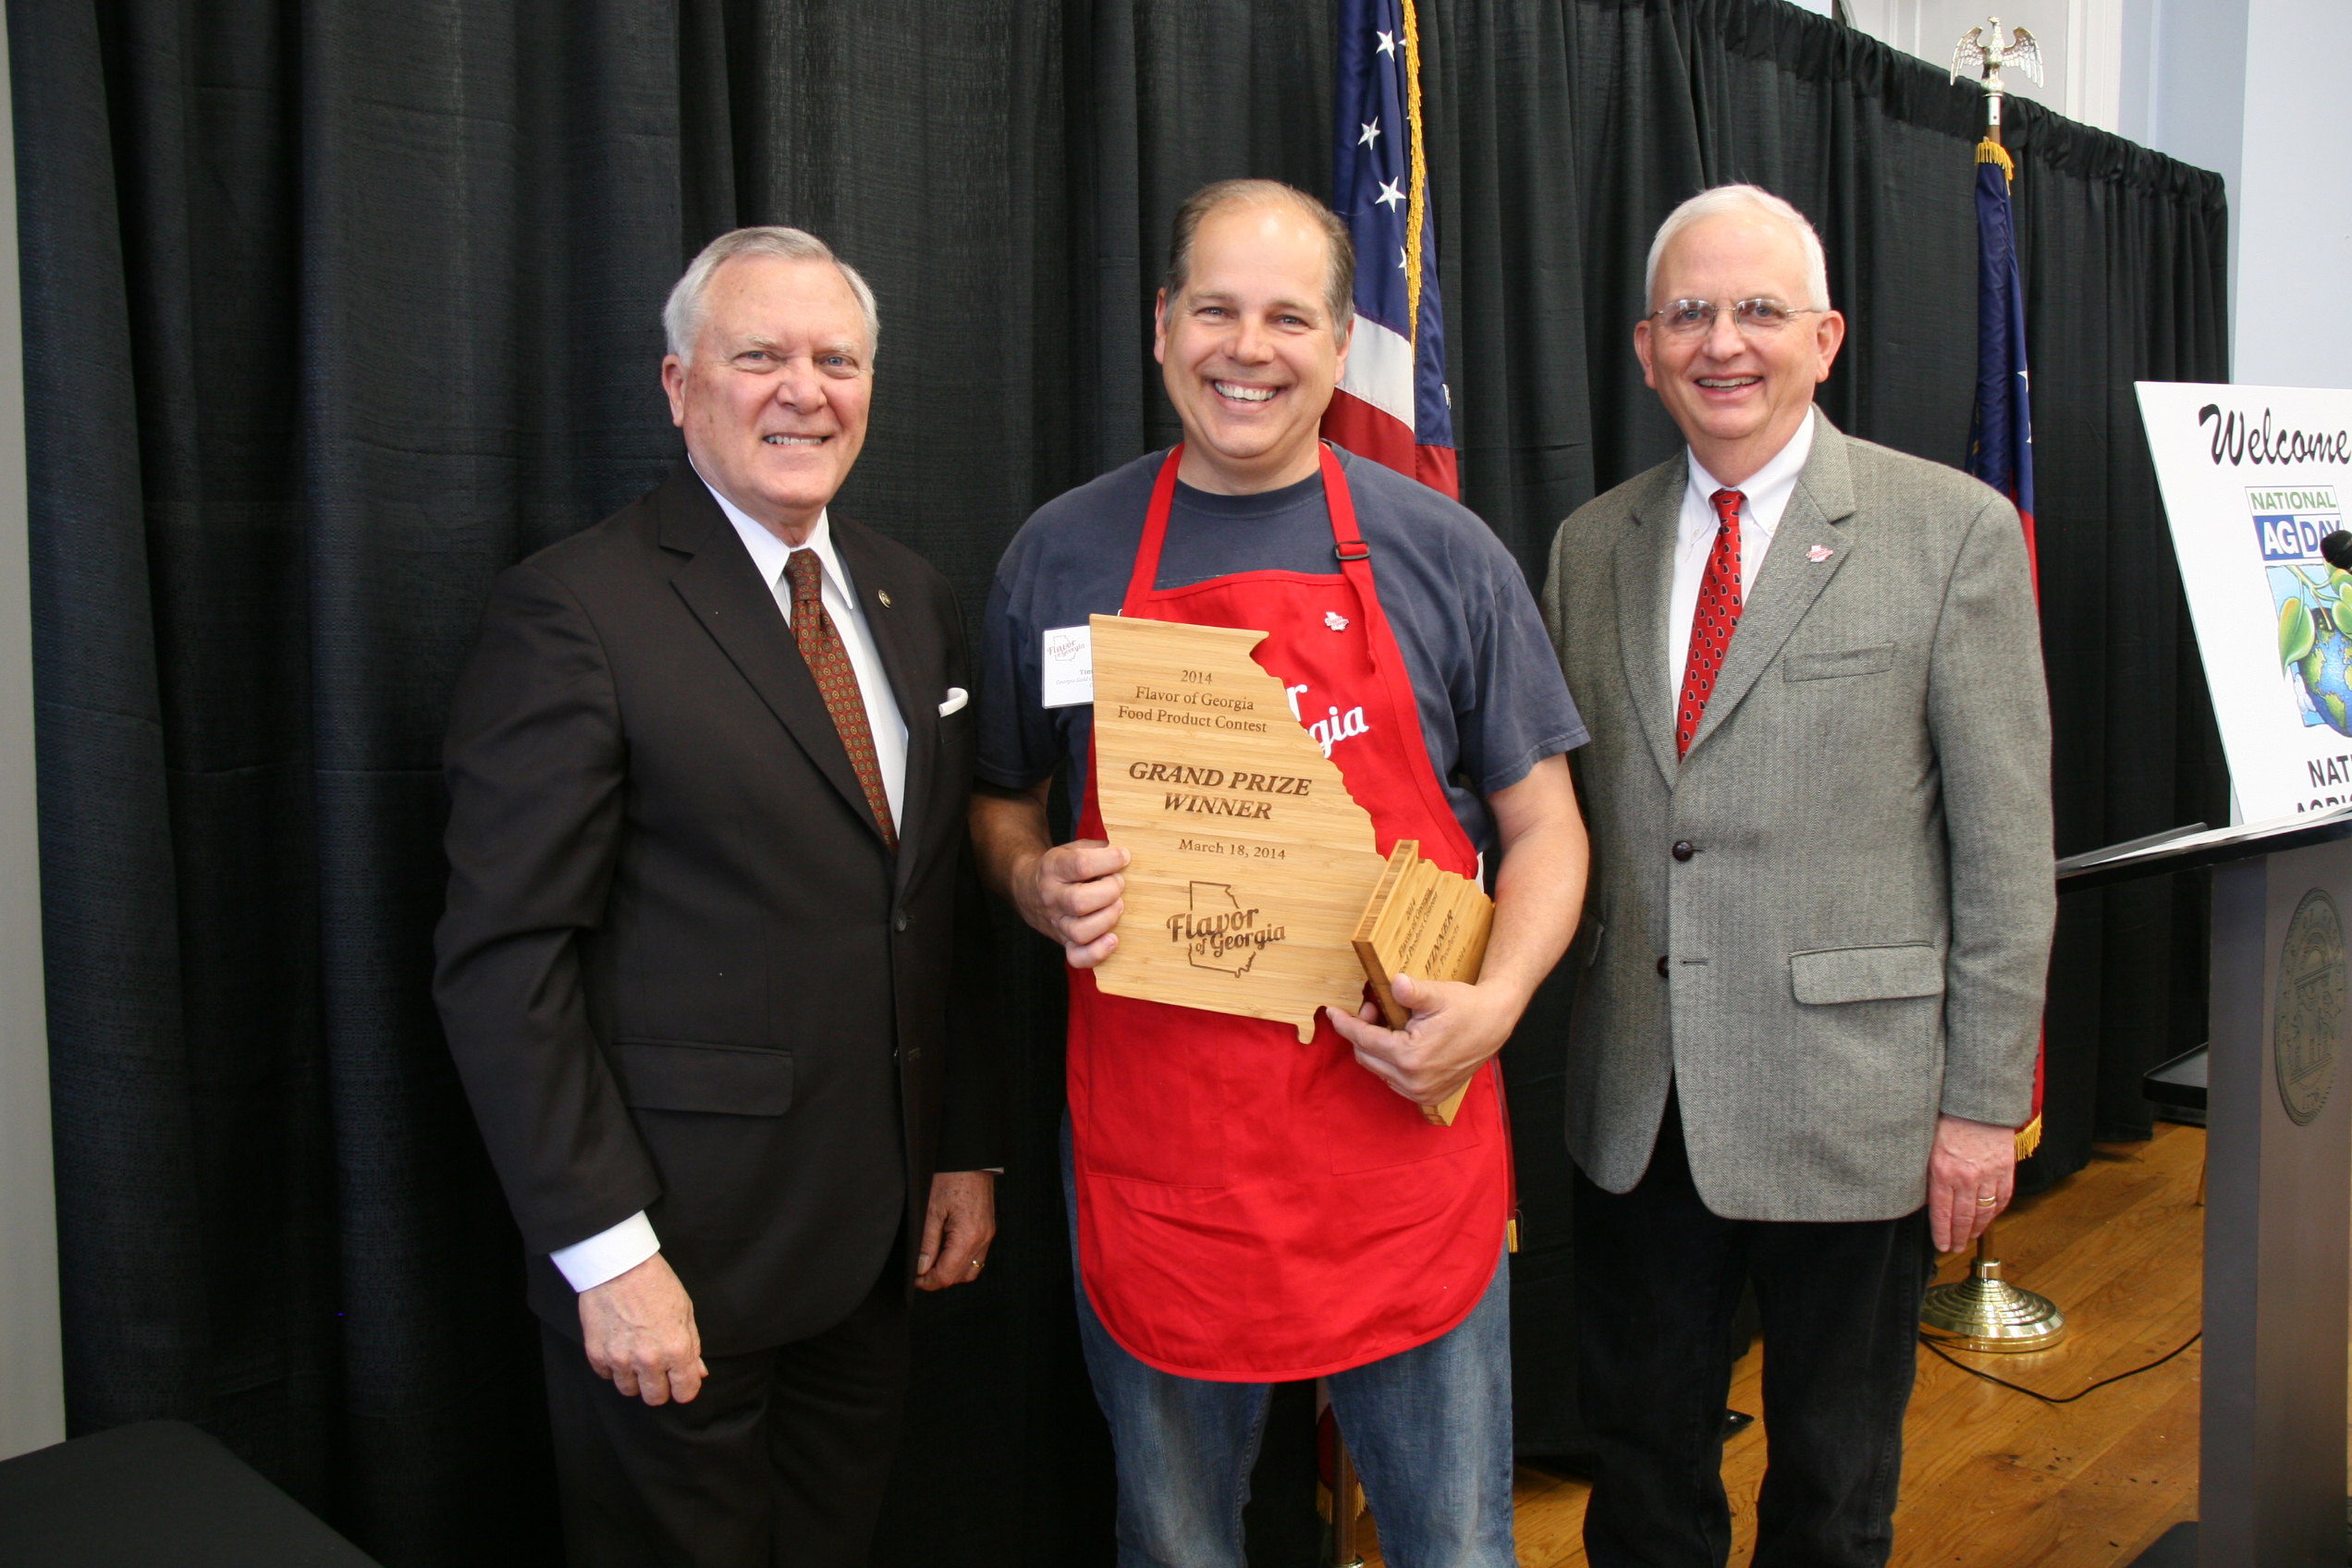 Tim Young, center, receives the Flavor of Georgia grand prize for his Georgia Gold Clothbound Cheddar from Gov. Nathan Deal and Agriculture Commissioner Gary Black after the 2014 contest.